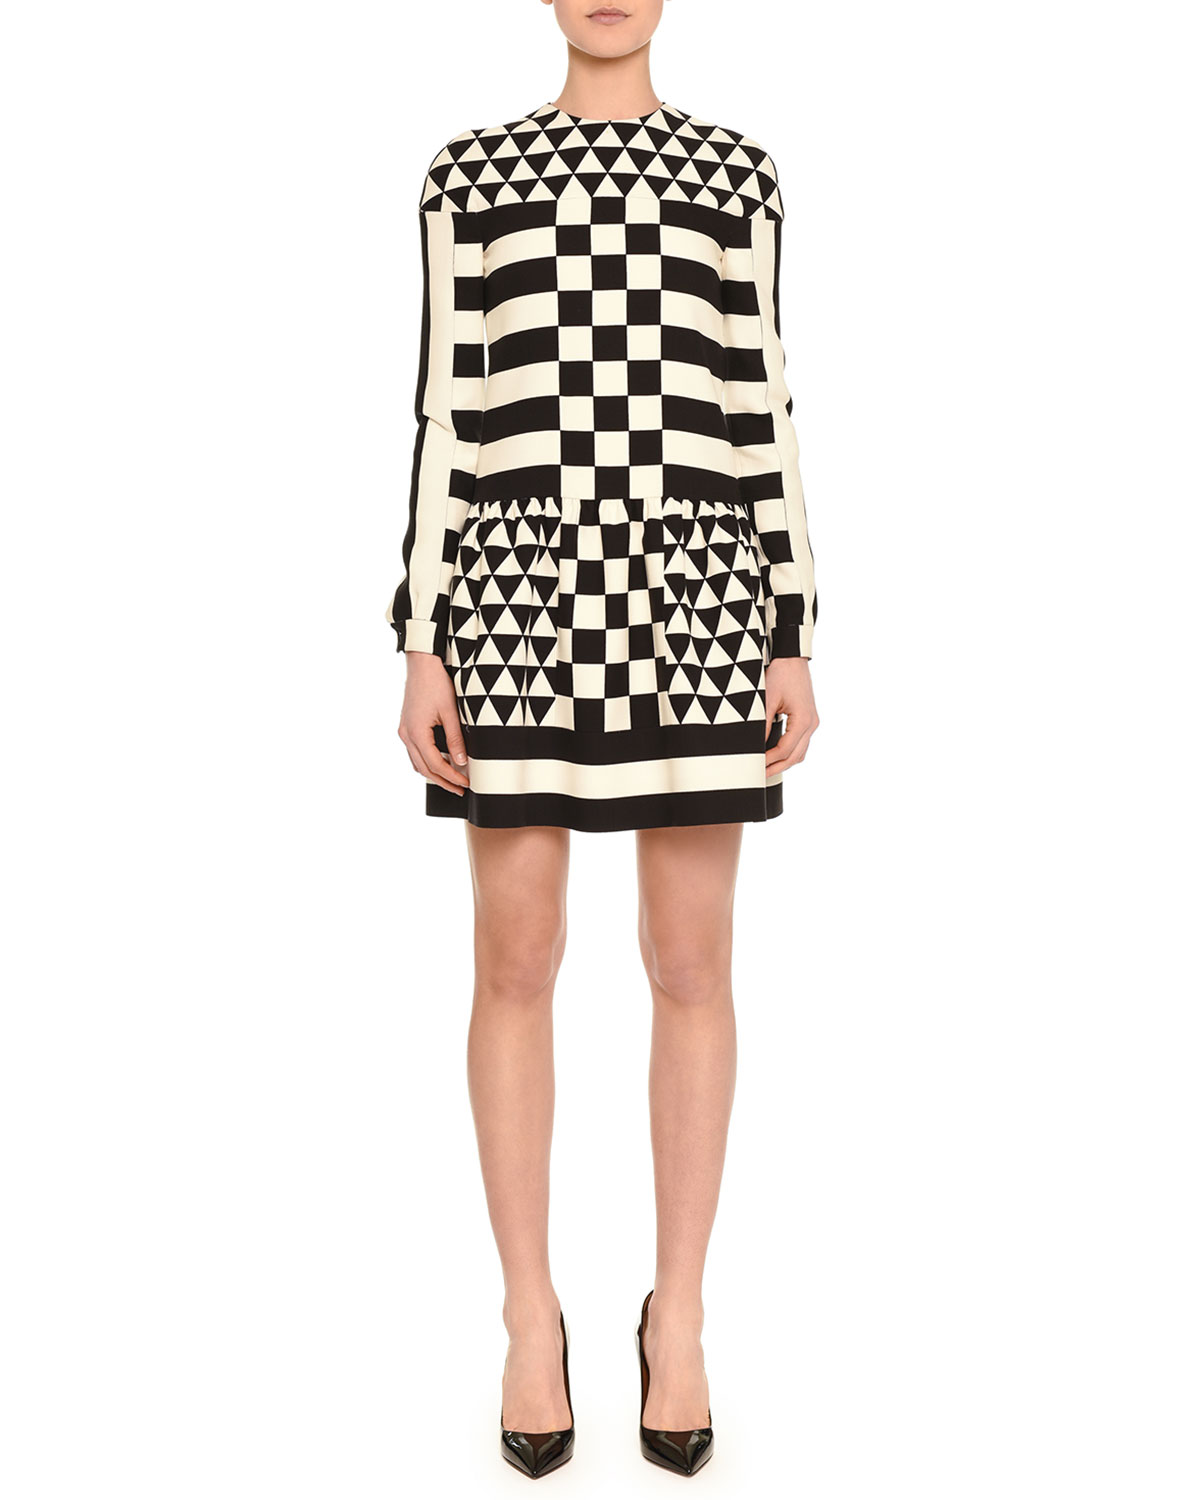 Long-Sleeve Jewel-Neck Geometric Squares Dress, Black/White, Size: 10 - Valentino